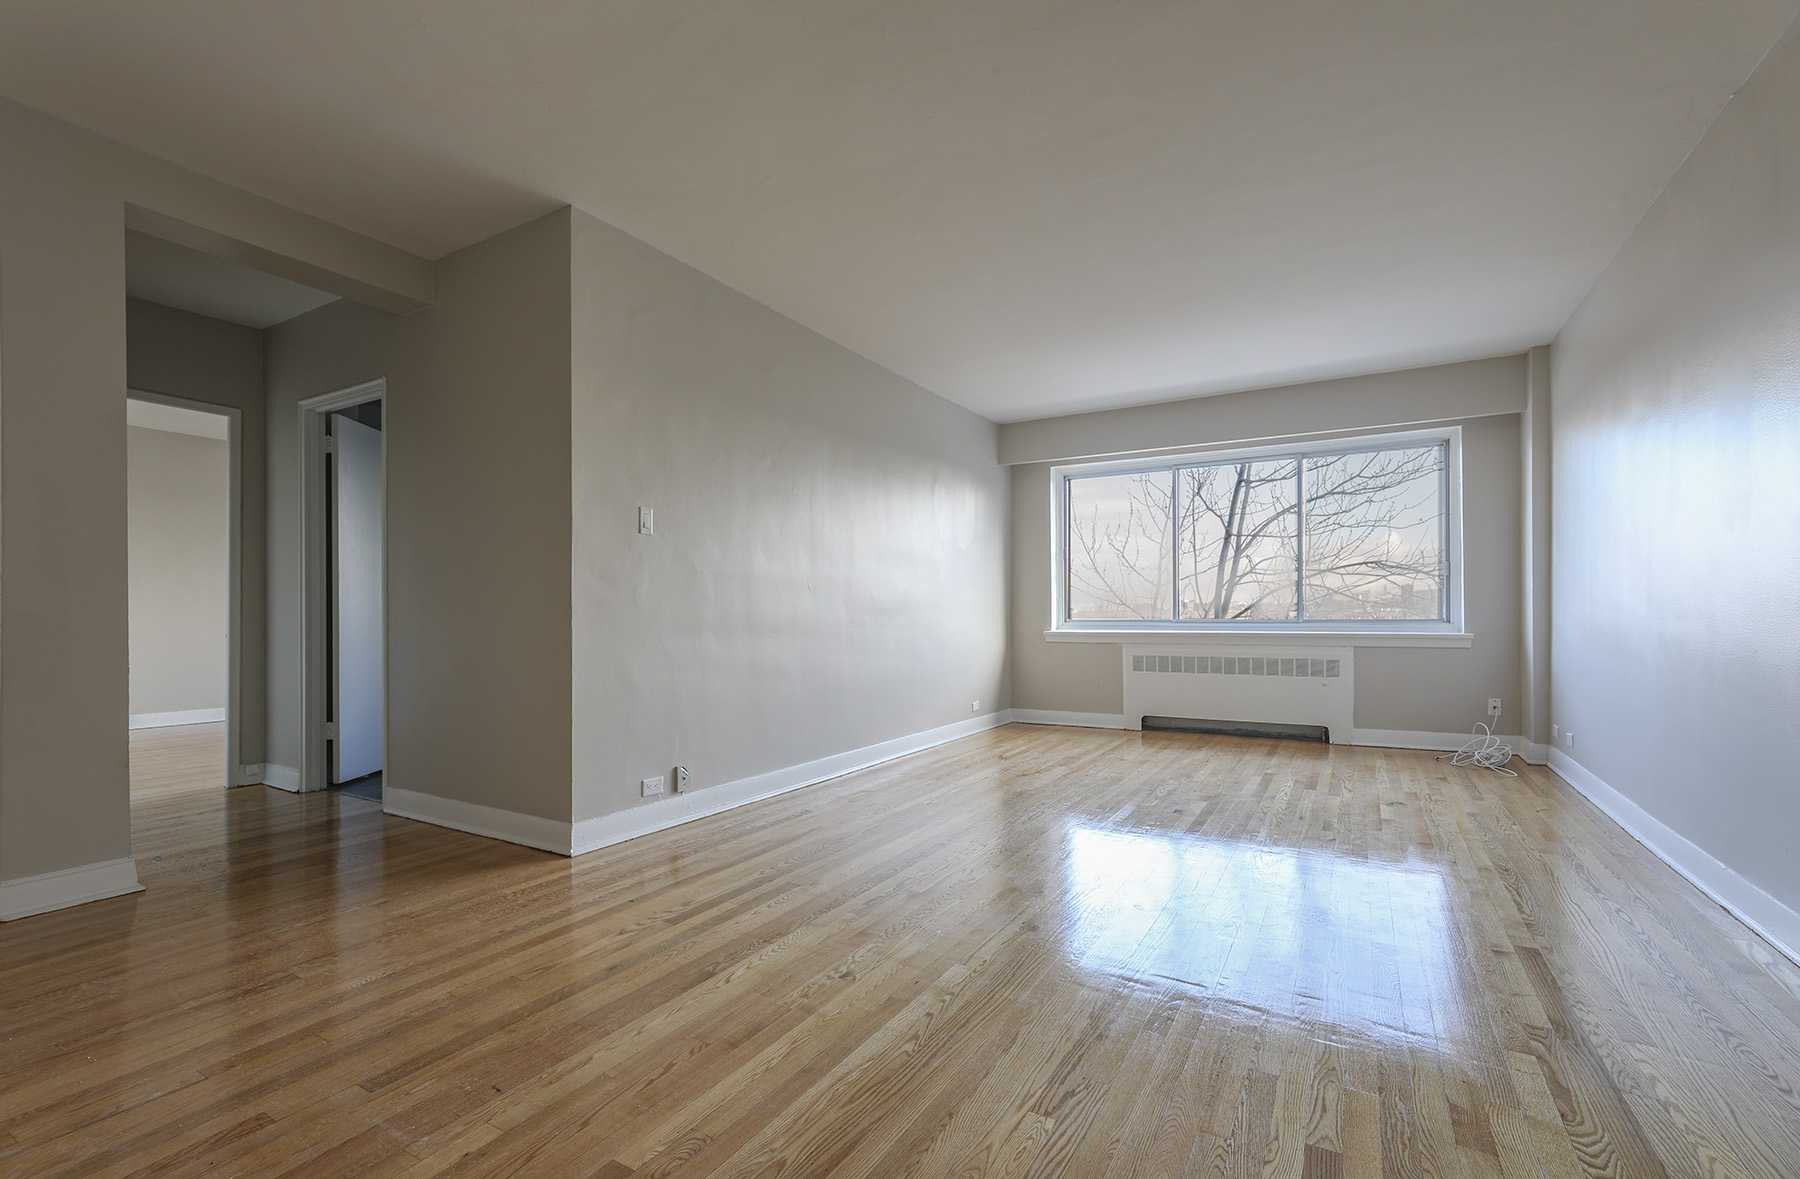 1 bedroom Apartments for rent in Montreal West at 6955 Fielding - Photo 03 - RentQuebecApartments – L401541